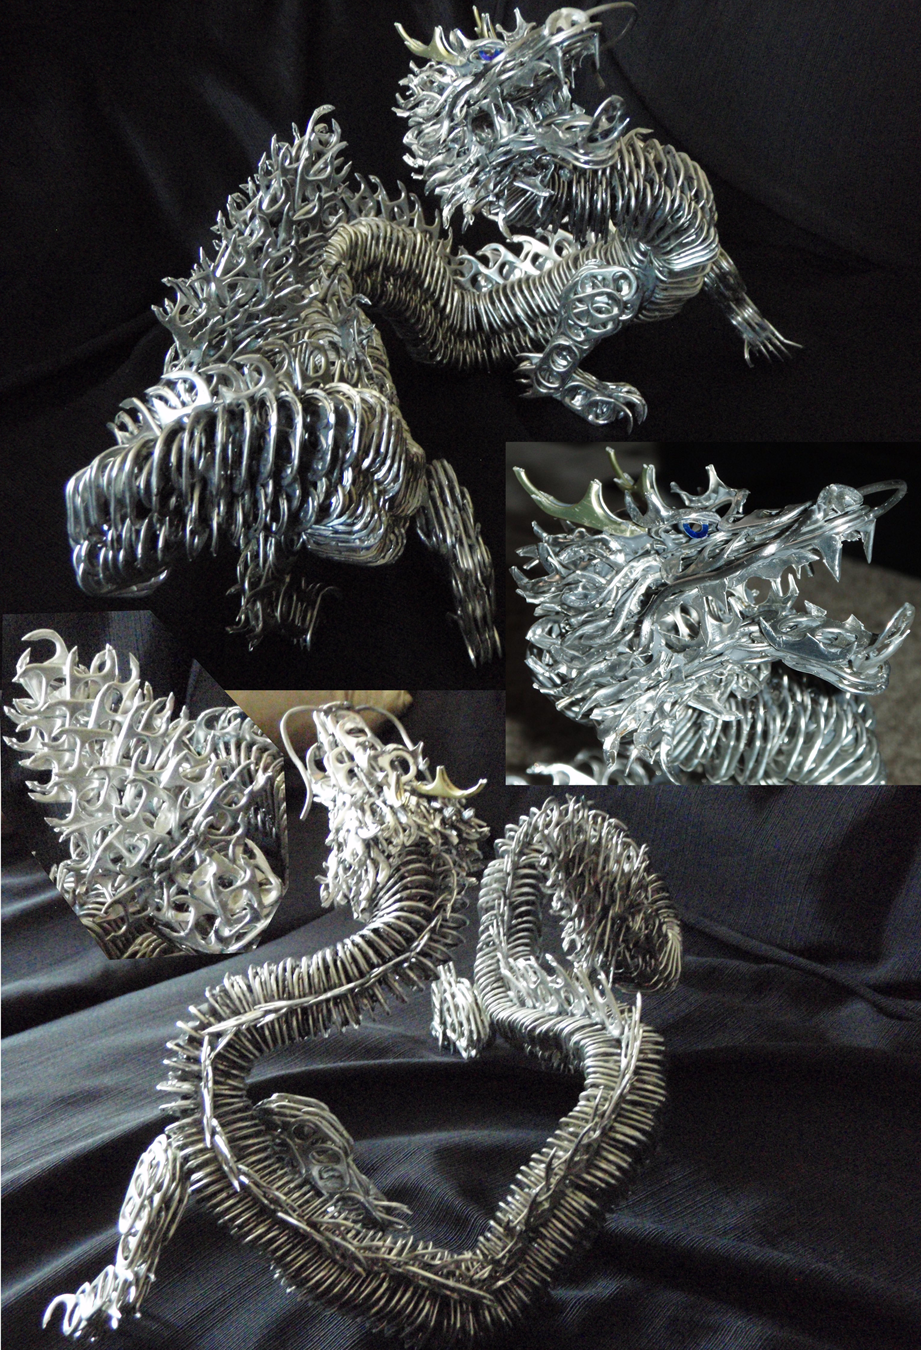 Soda pop tabs crafts - Some Cool Ways To Use Those Pop Tabs Haven T Seen These Yet